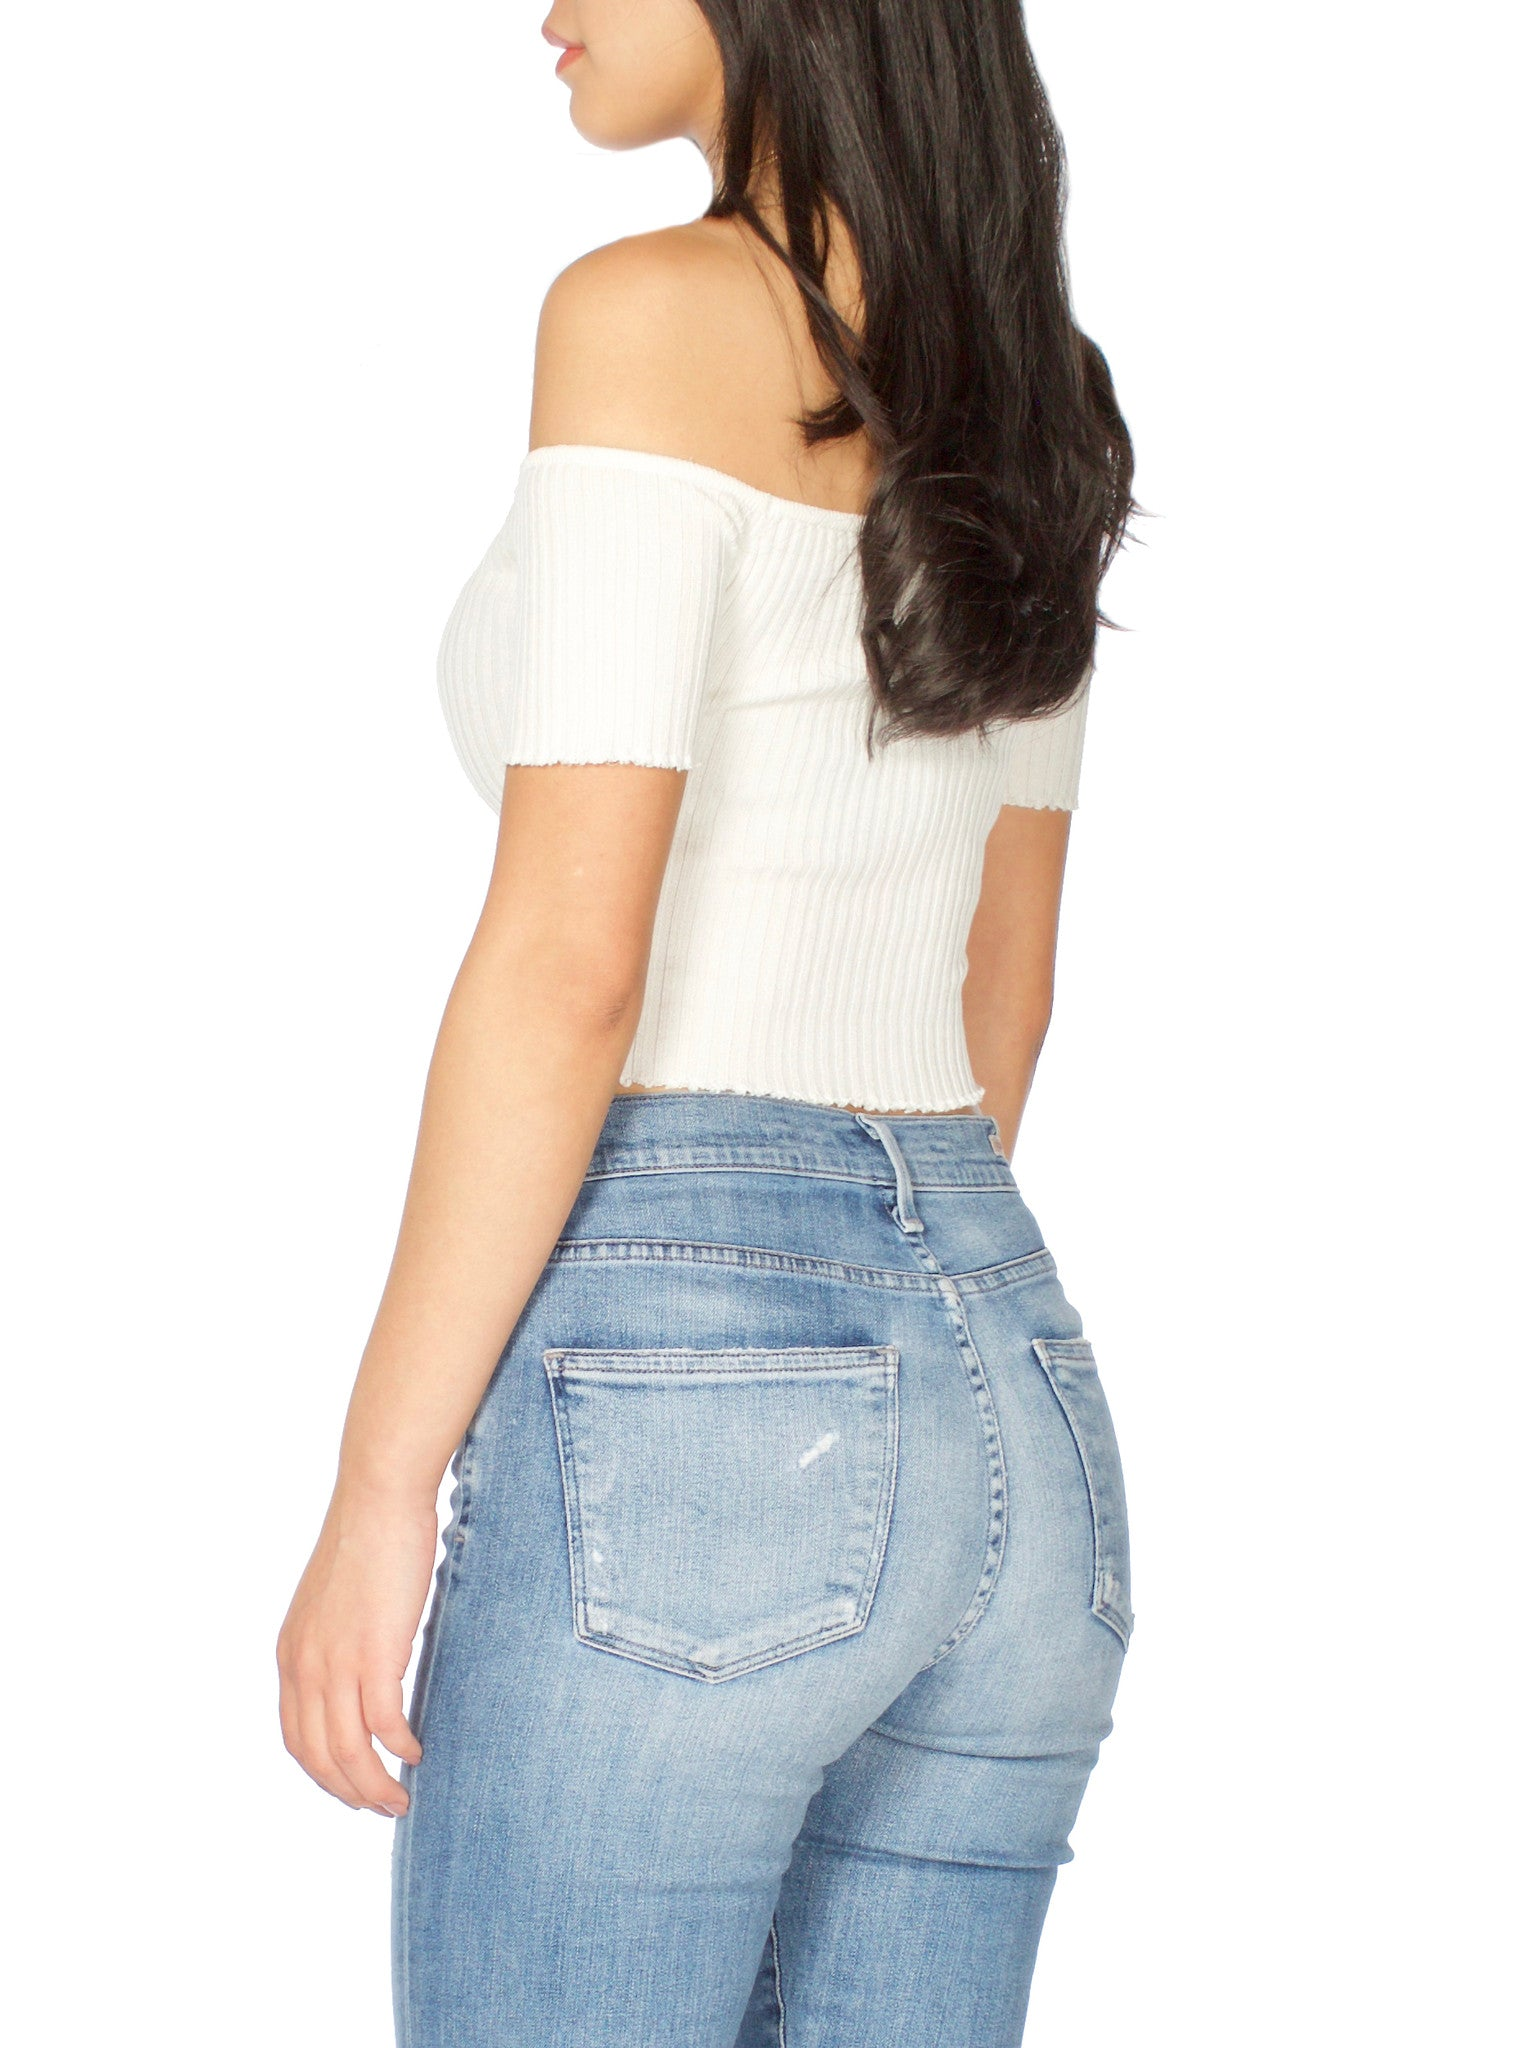 Gabi Crop Top - PRADEGAL